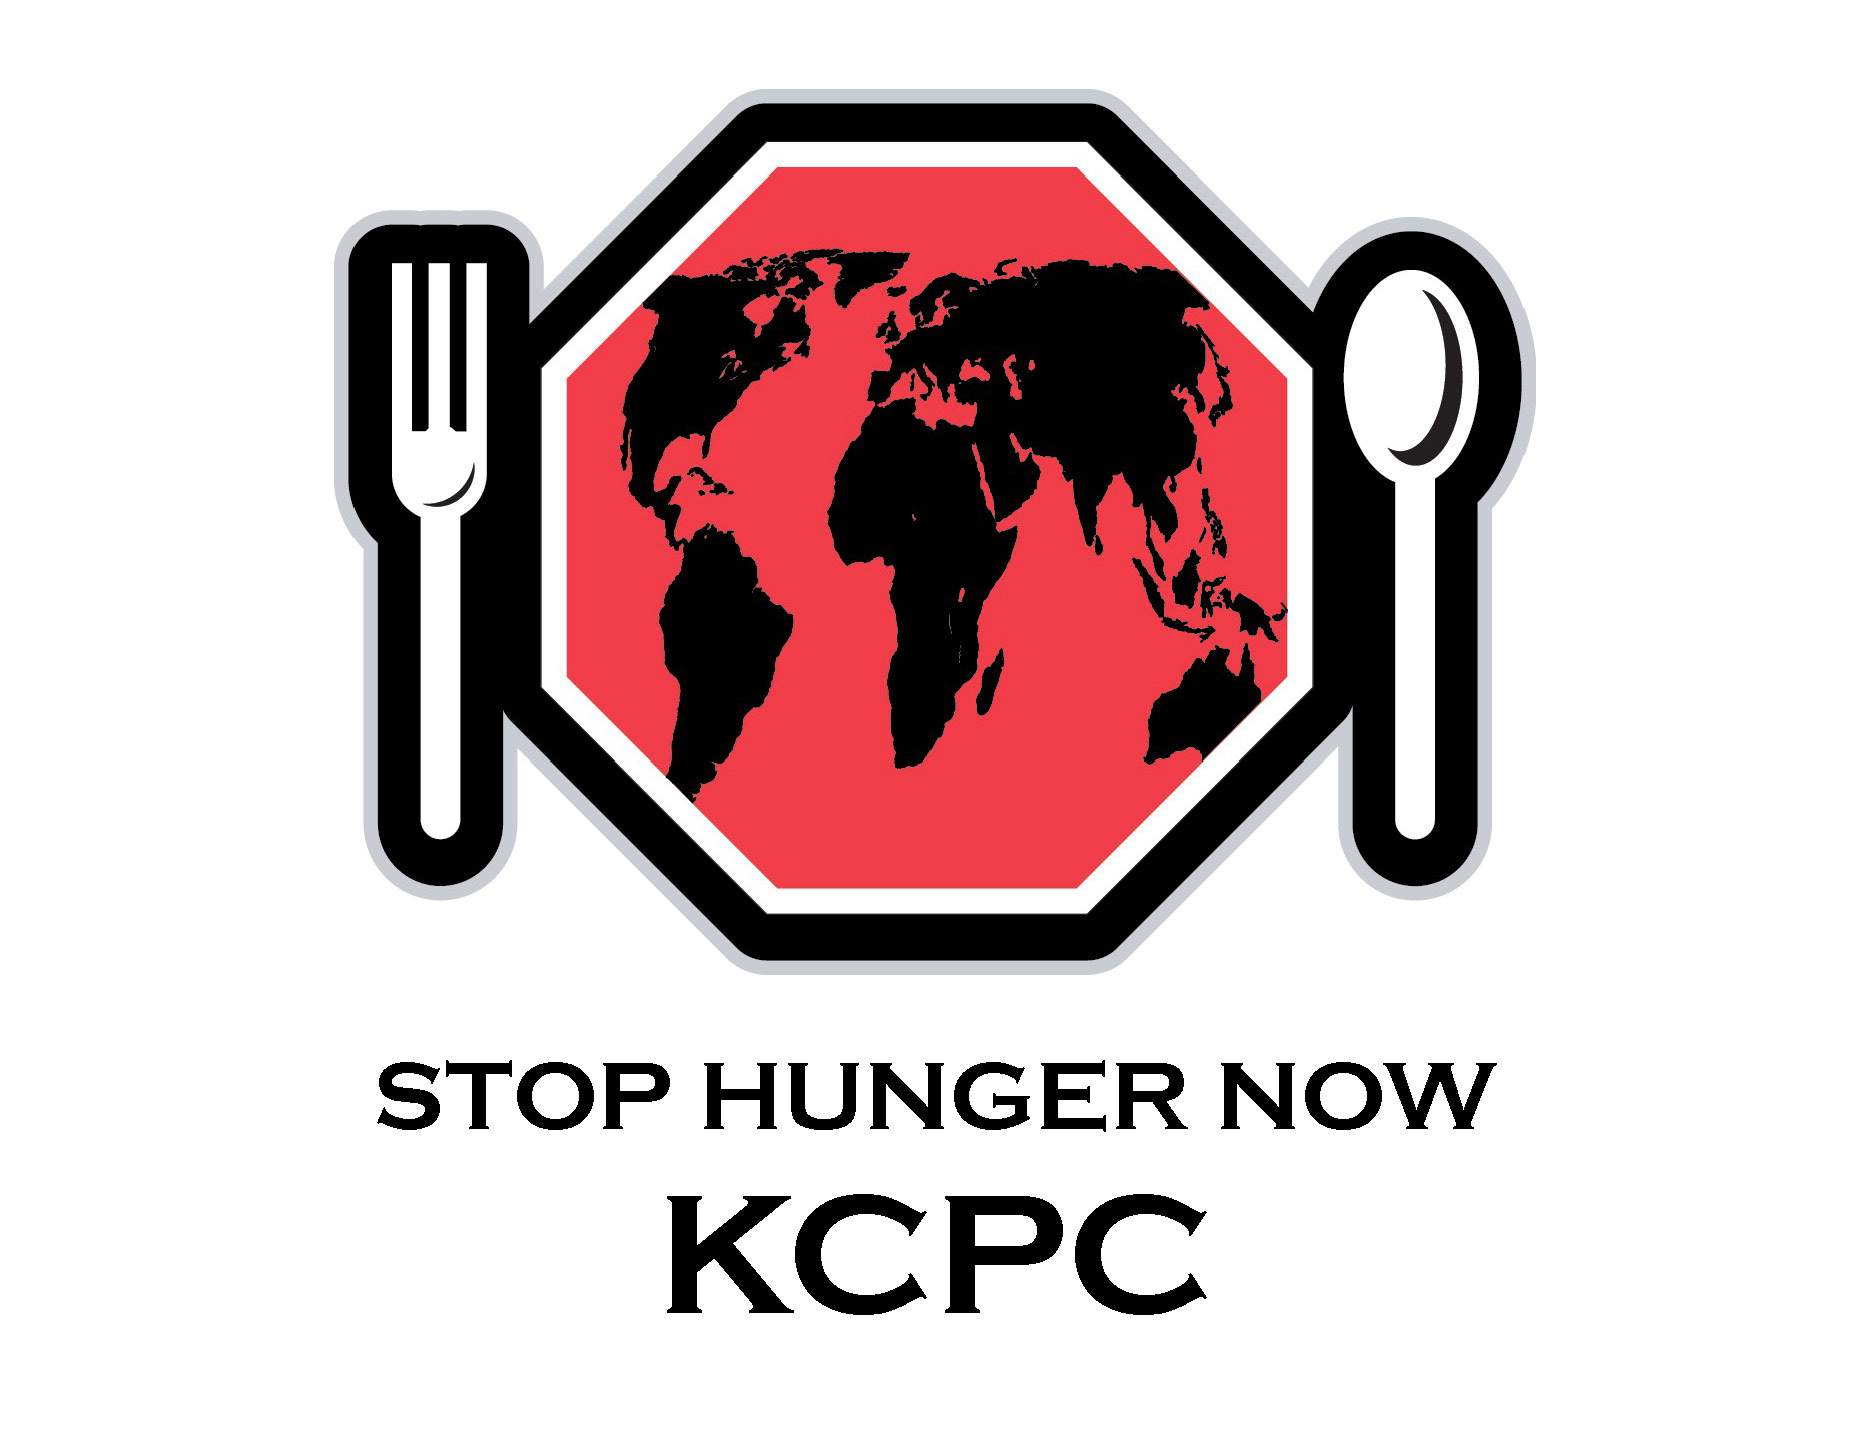 STOP HUNGER NOW KCPC